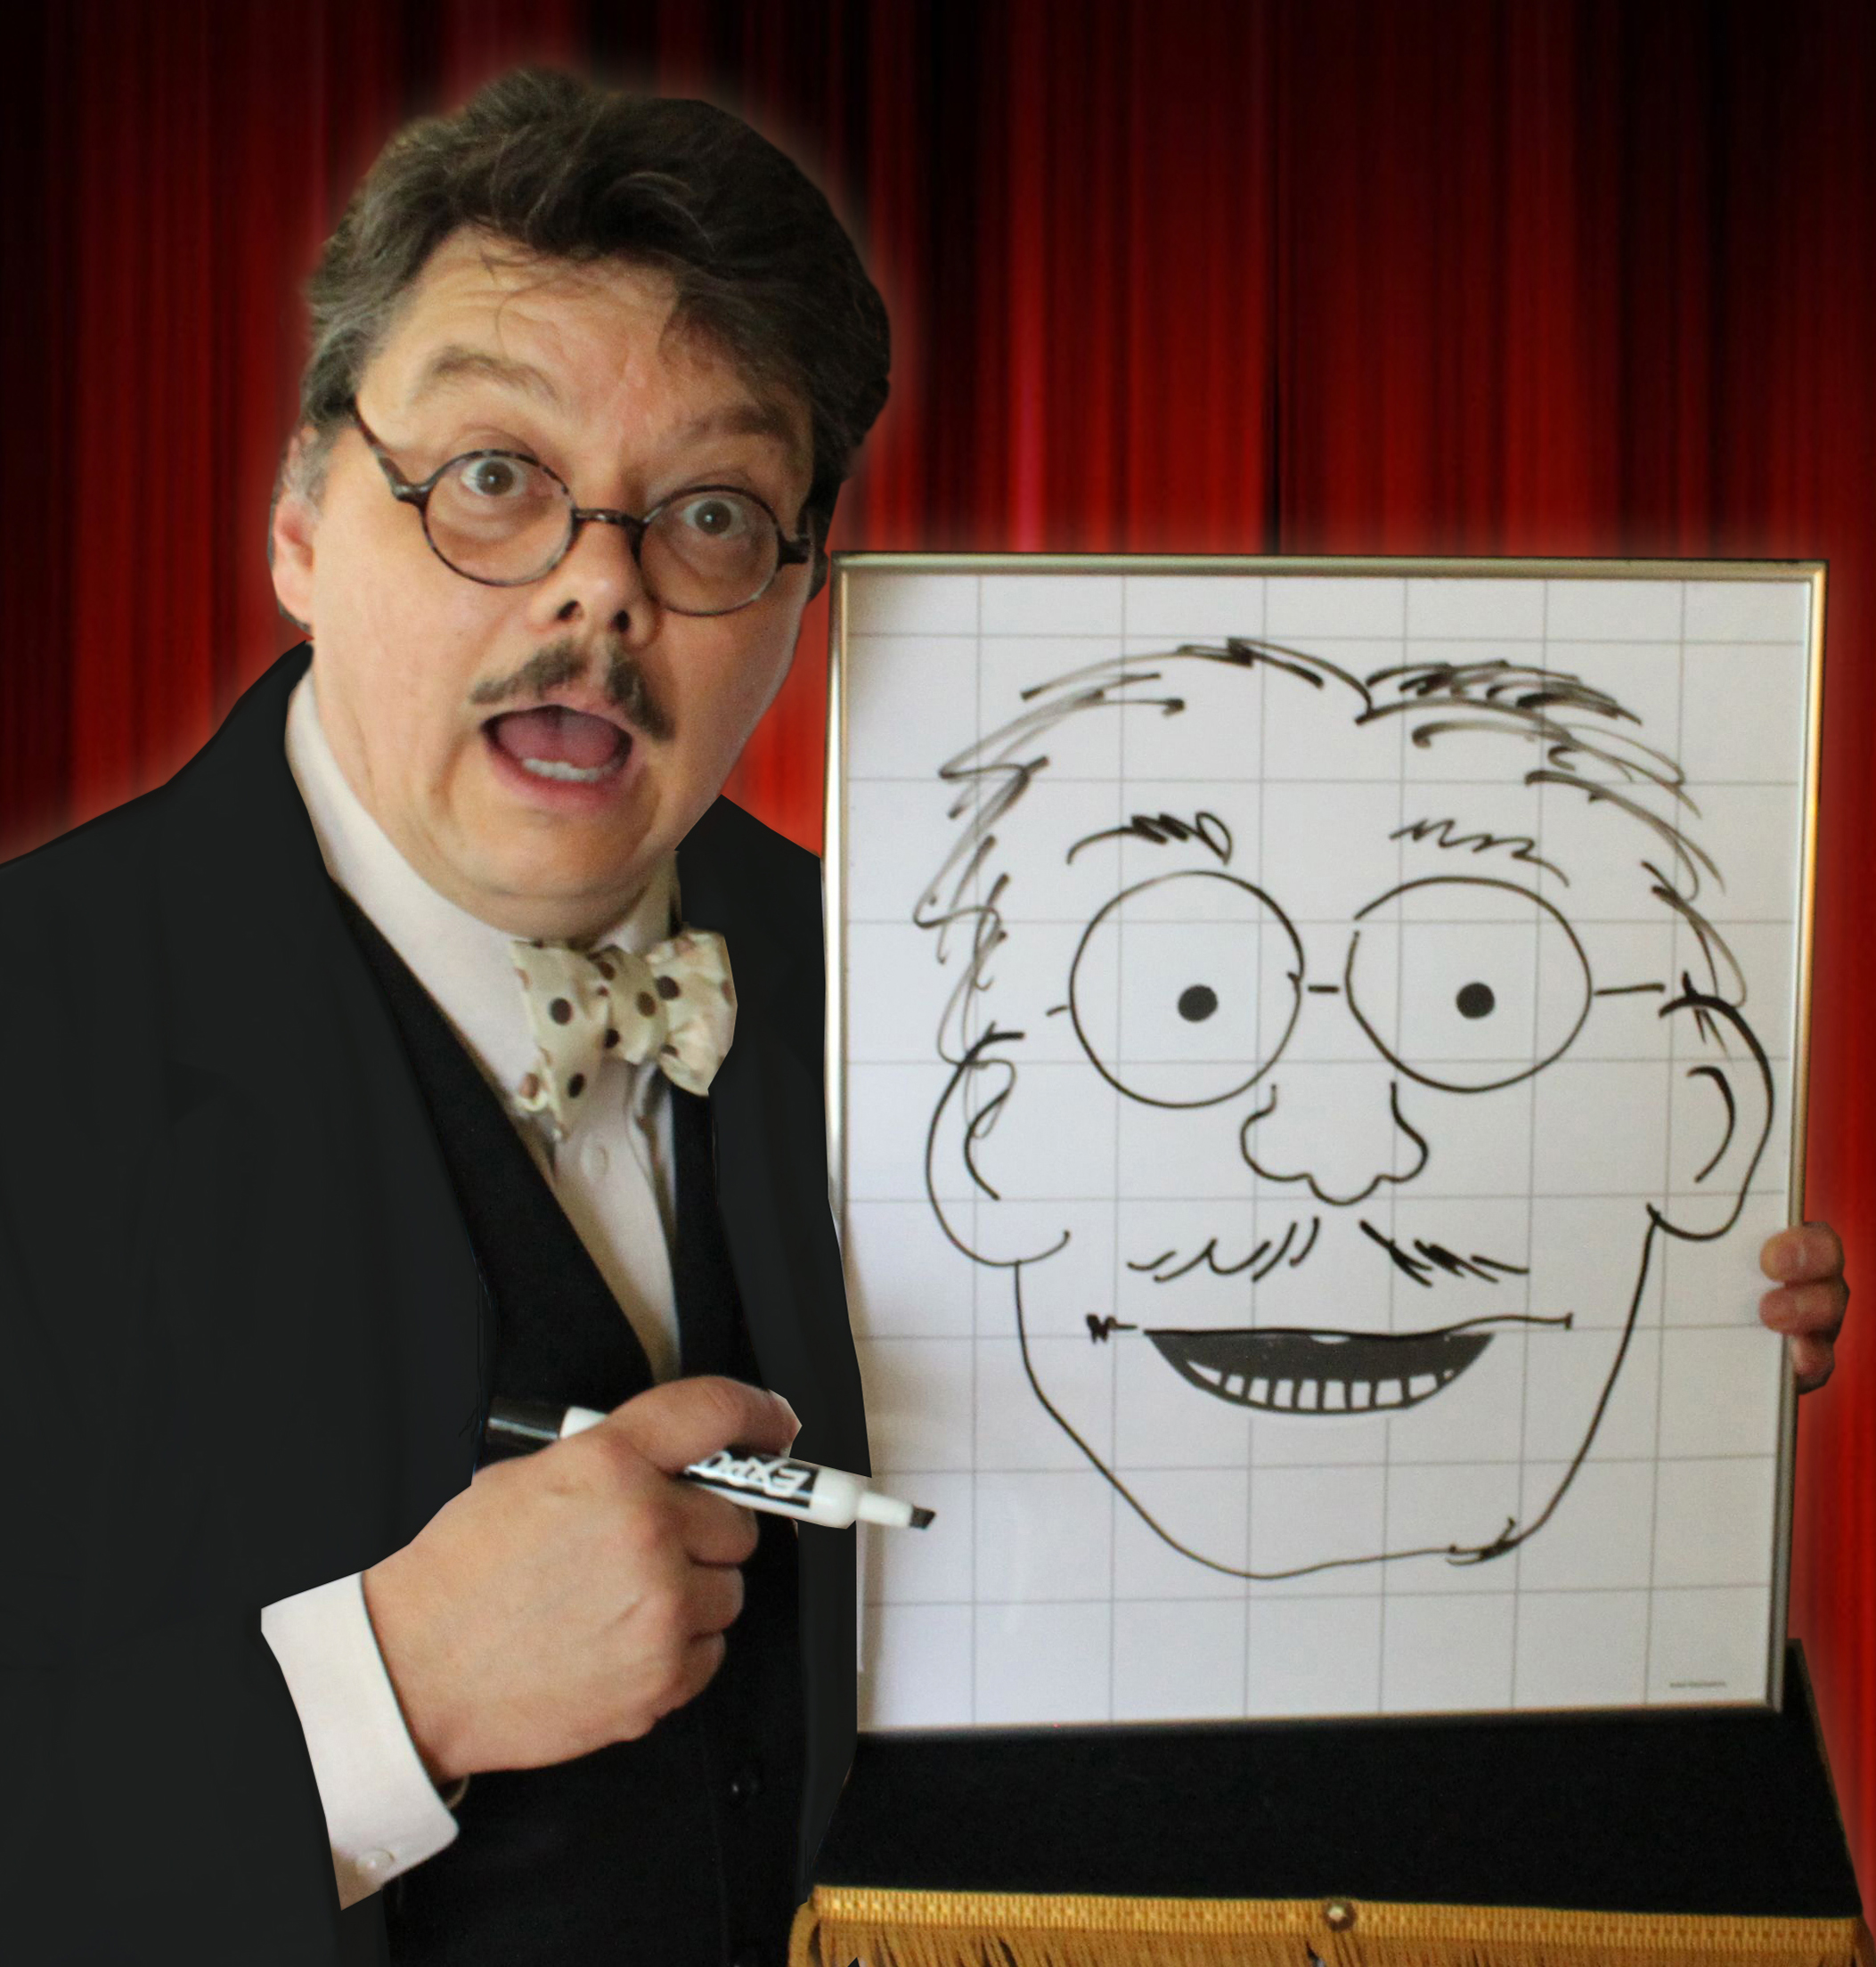 """David Pitts, also known as The Astonishing Mr. Pitts"""", San Antonio, TX magician, ventriloquist and family entertainer, amazes his audience with """"The Evil Dr. Sketchy"""", a drawing that comes to life and talks!"""